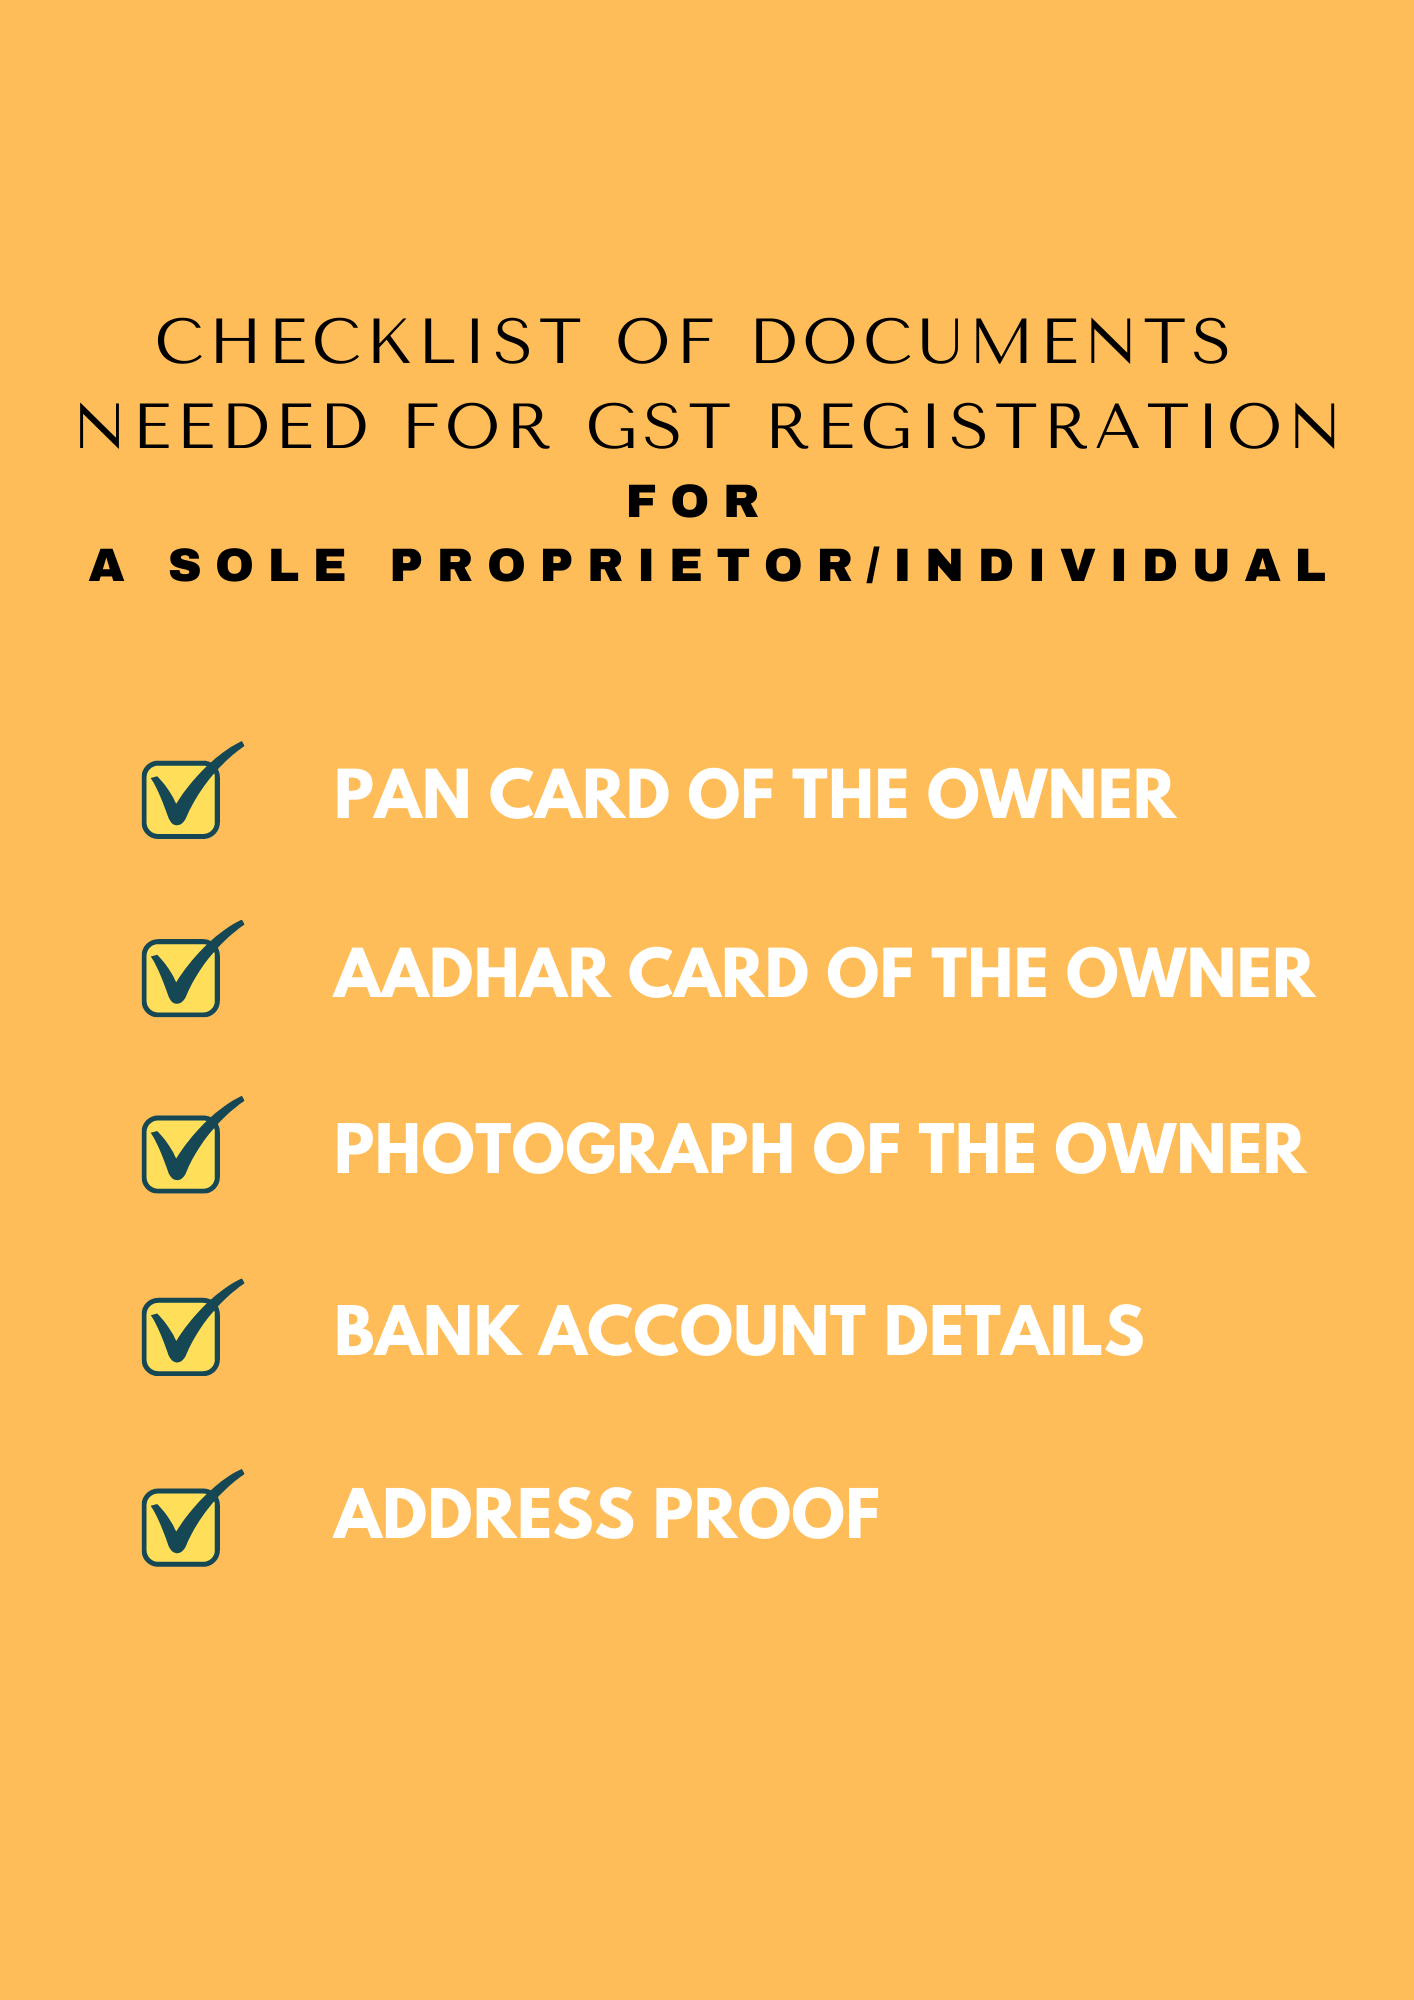 Documents Needed for GST Registration for sole proprietor/individual